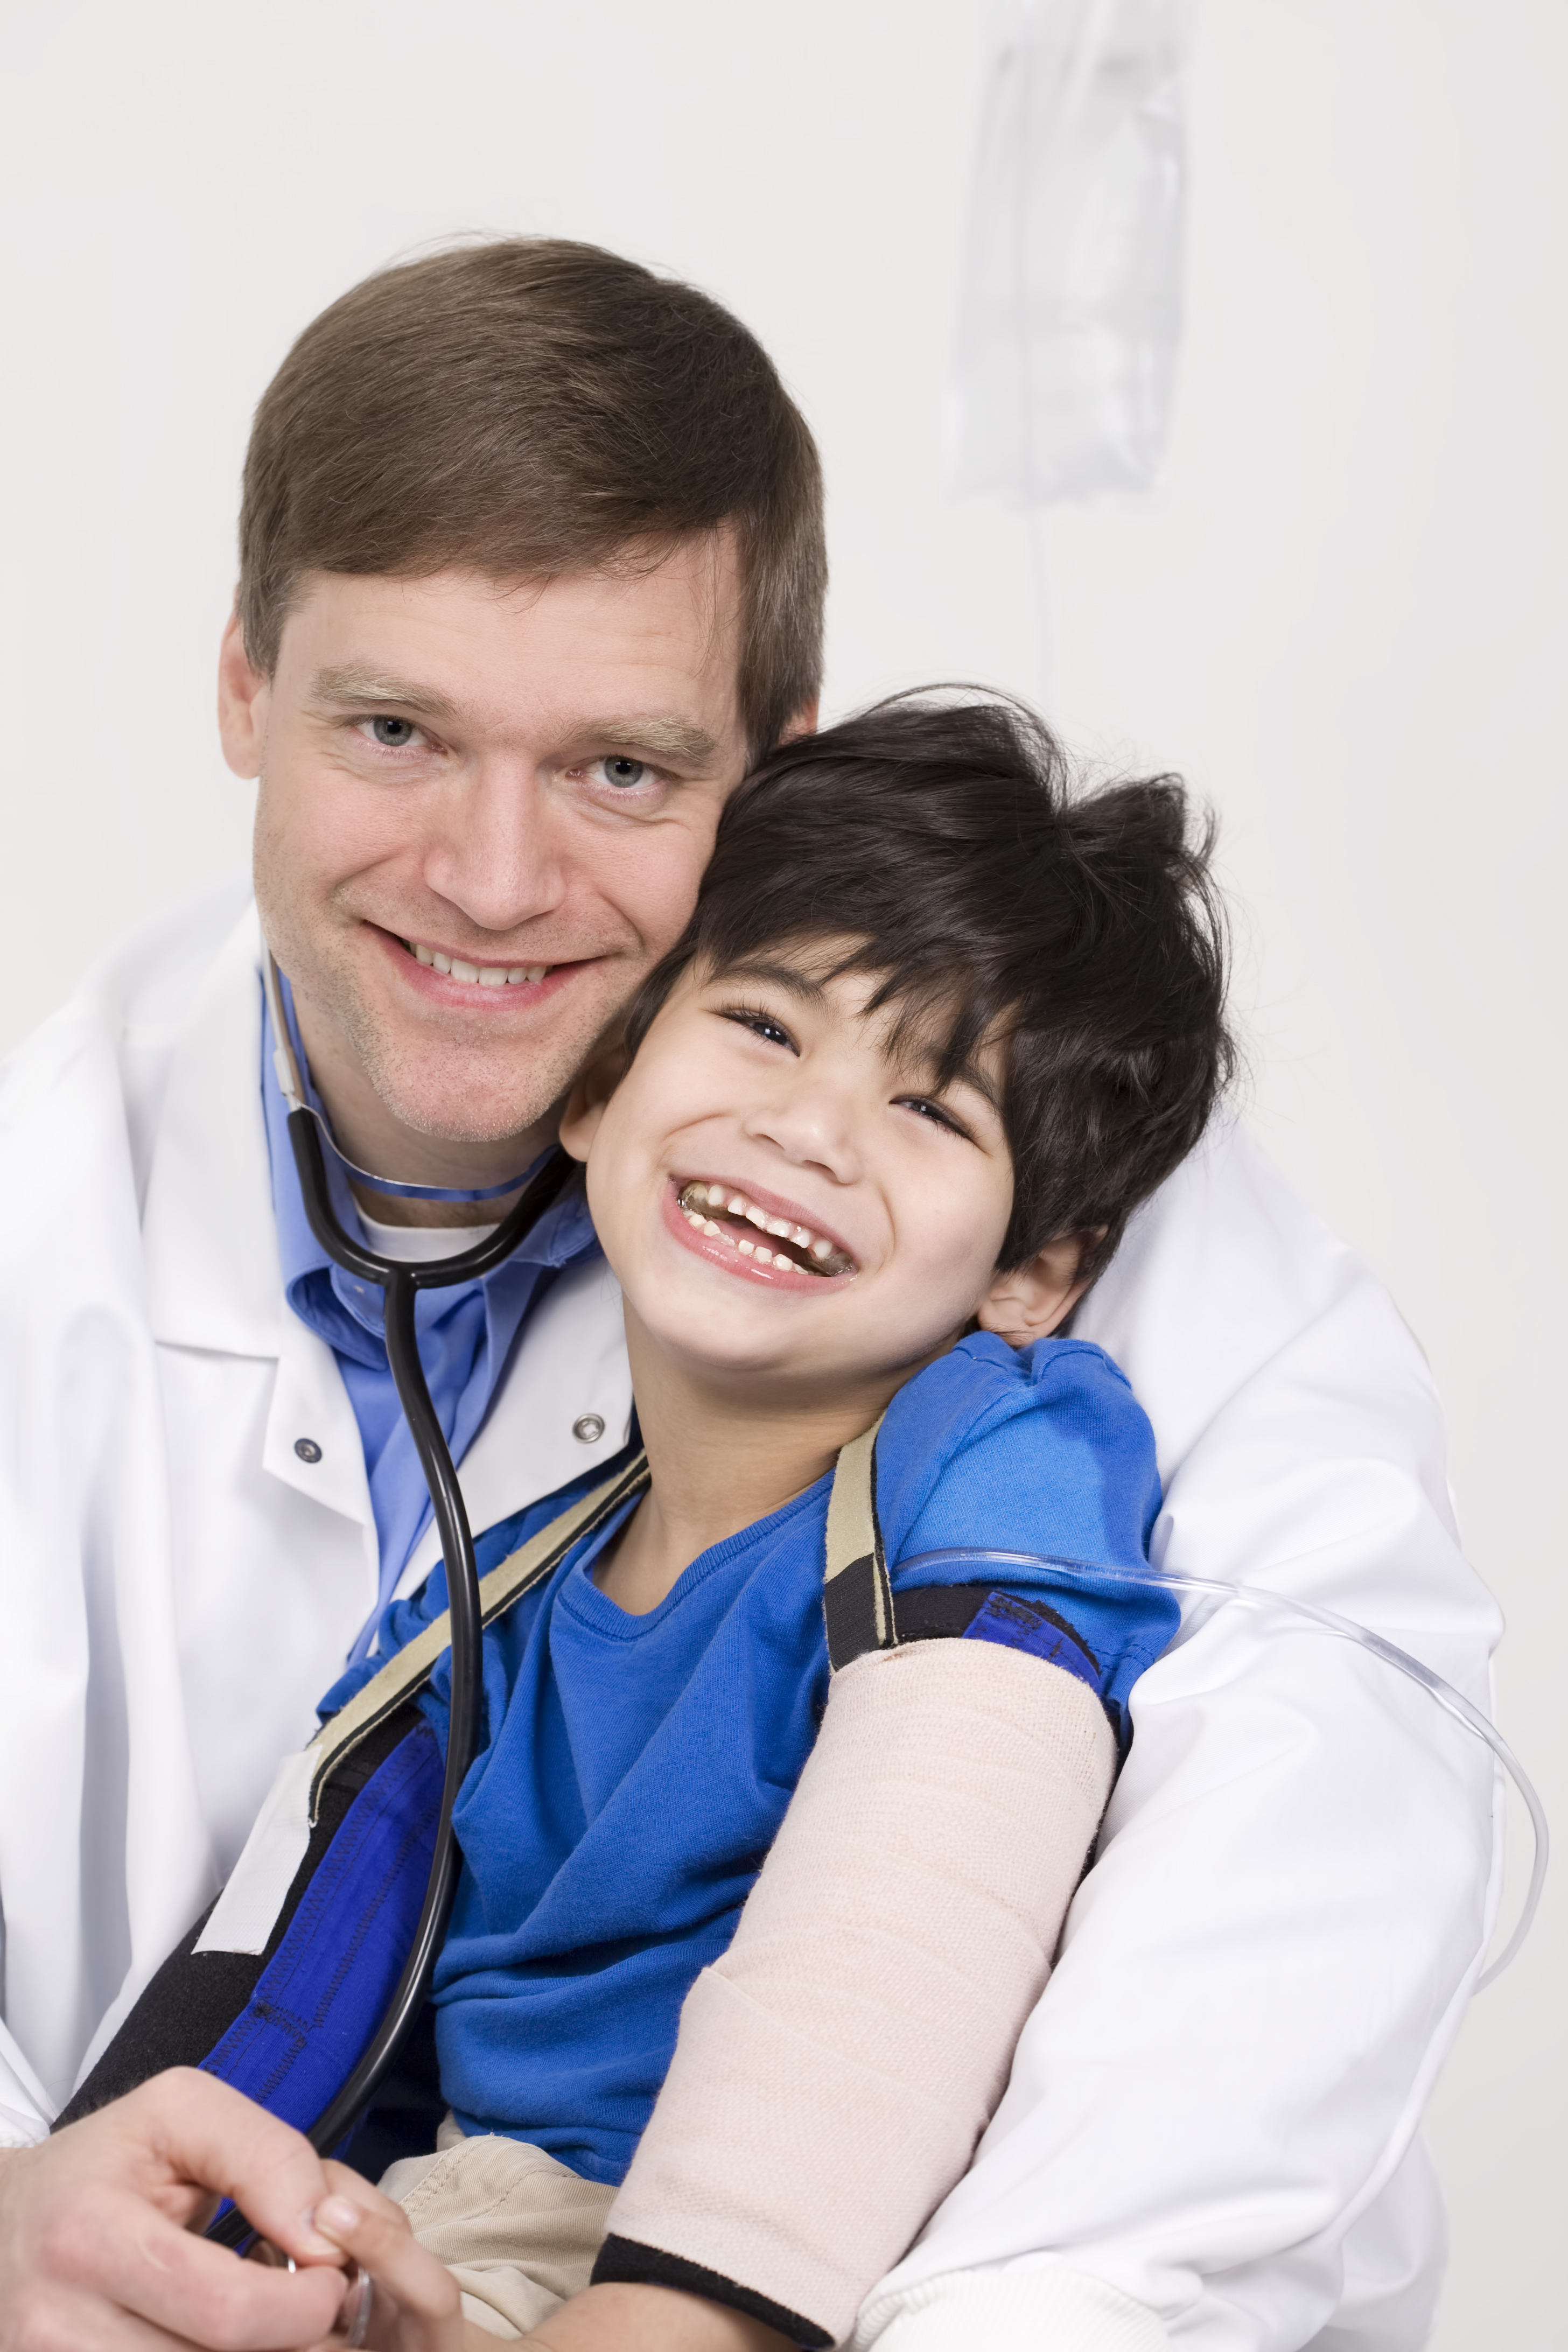 Doctor with handicap child